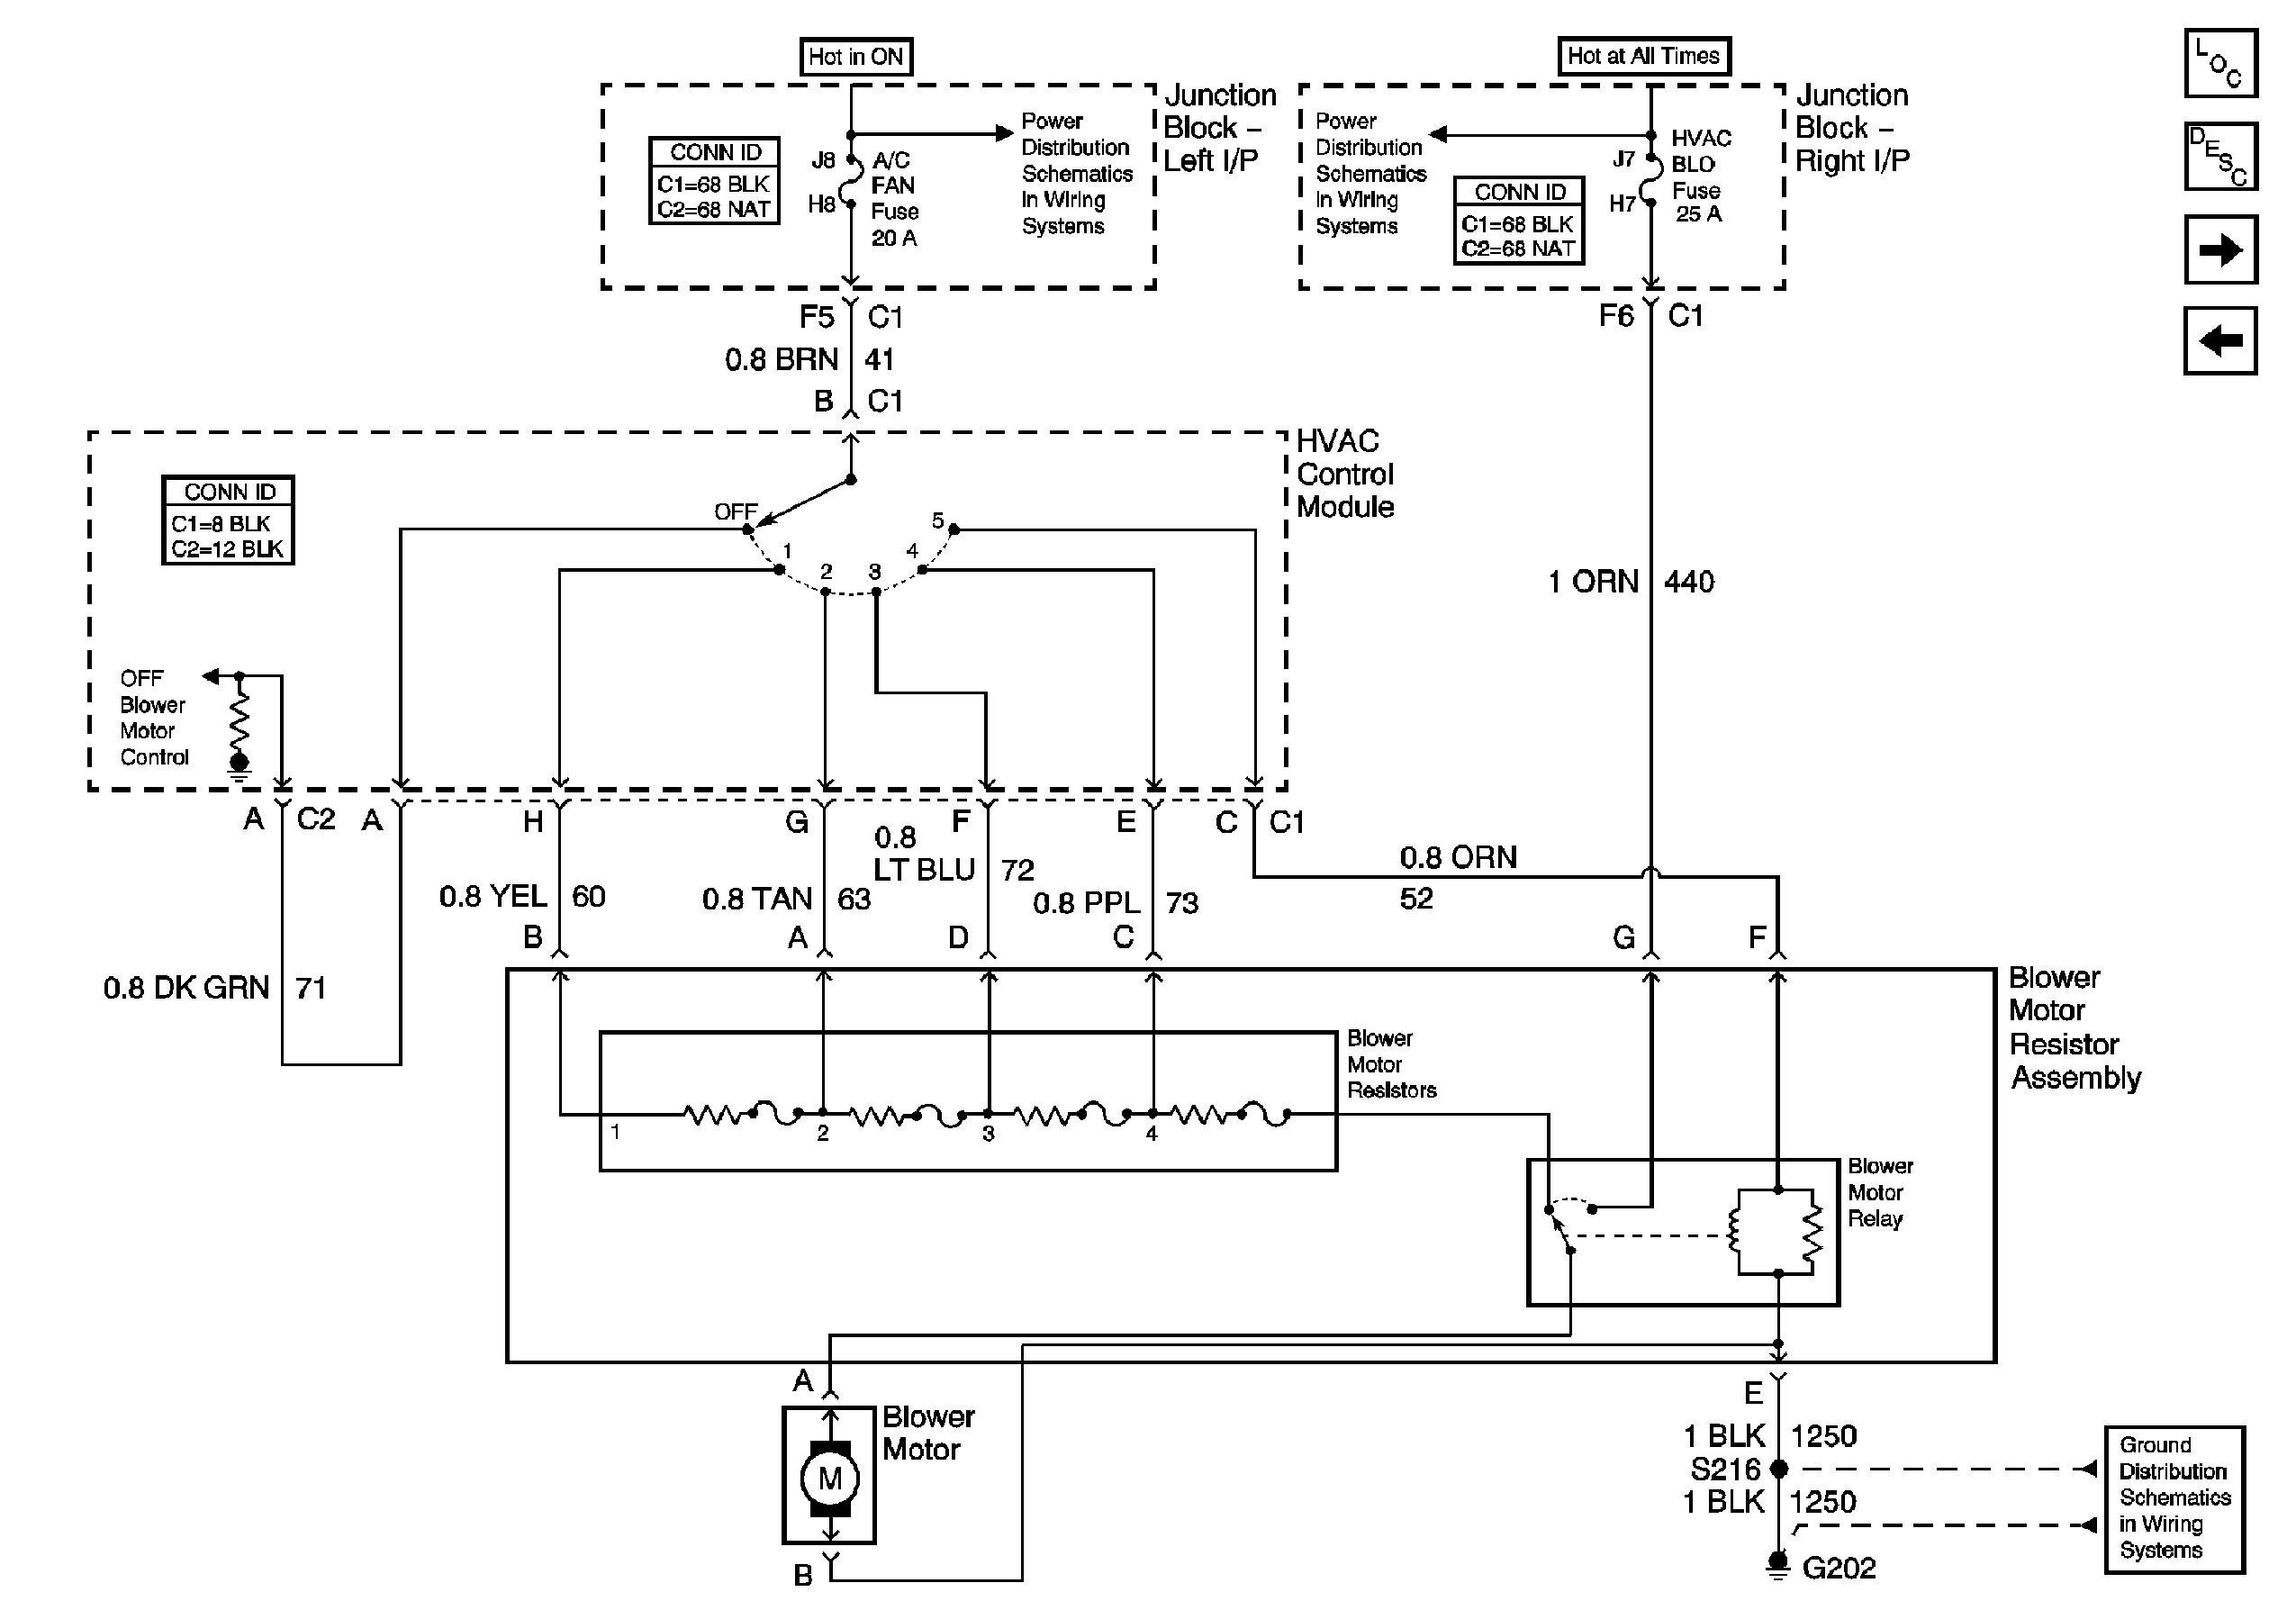 Dell Power Supply Wiring Diagram Get Free Image About Wiring Diagram